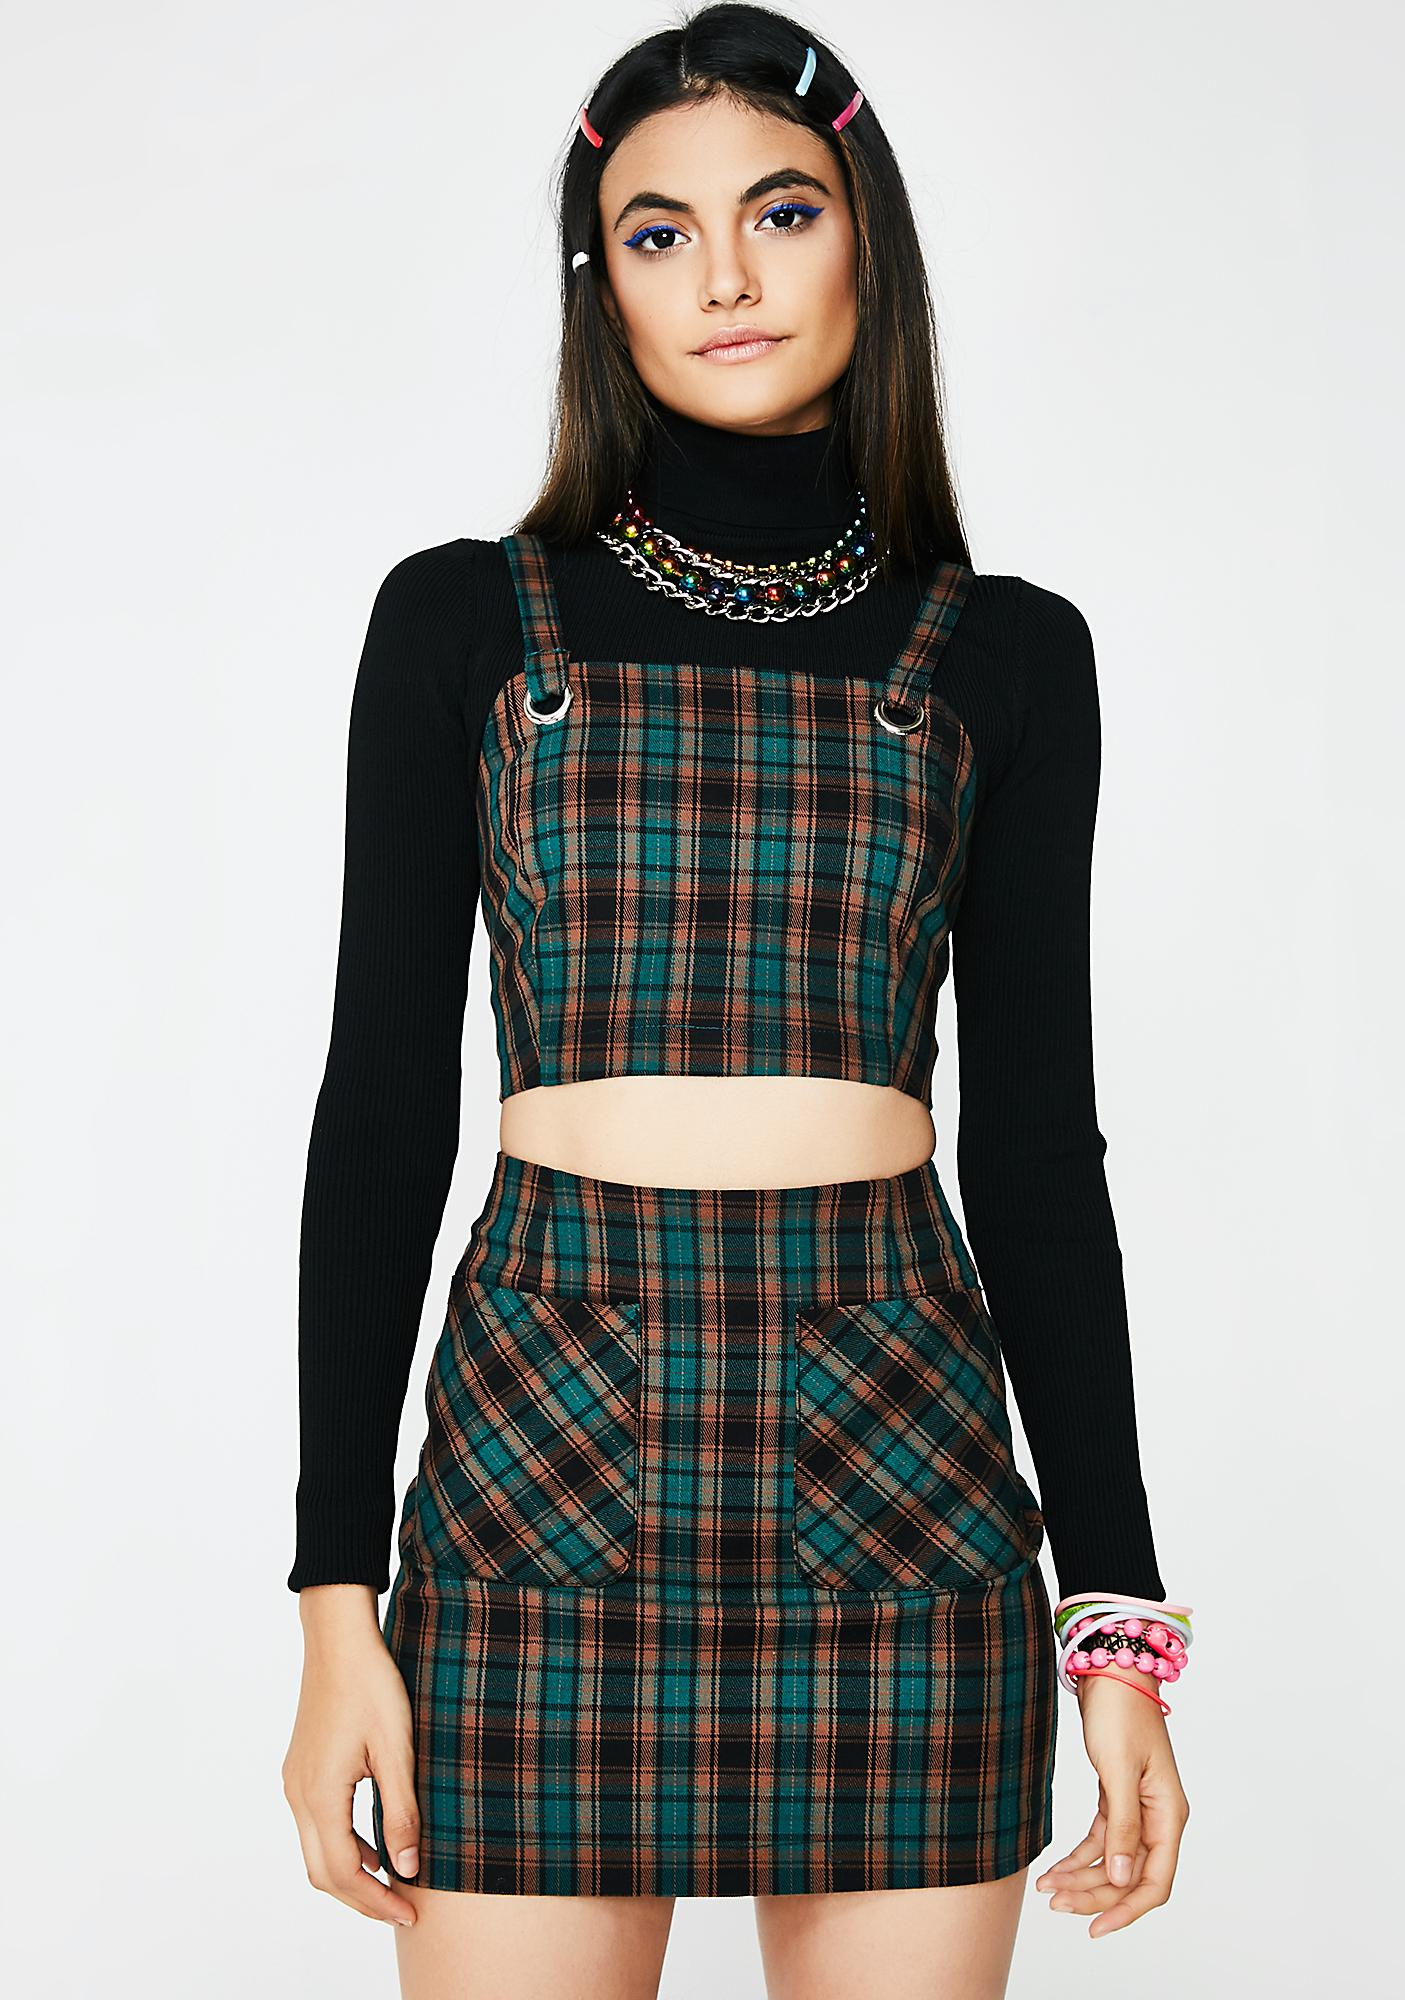 Forest Conflict Of Interest Plaid Skirt